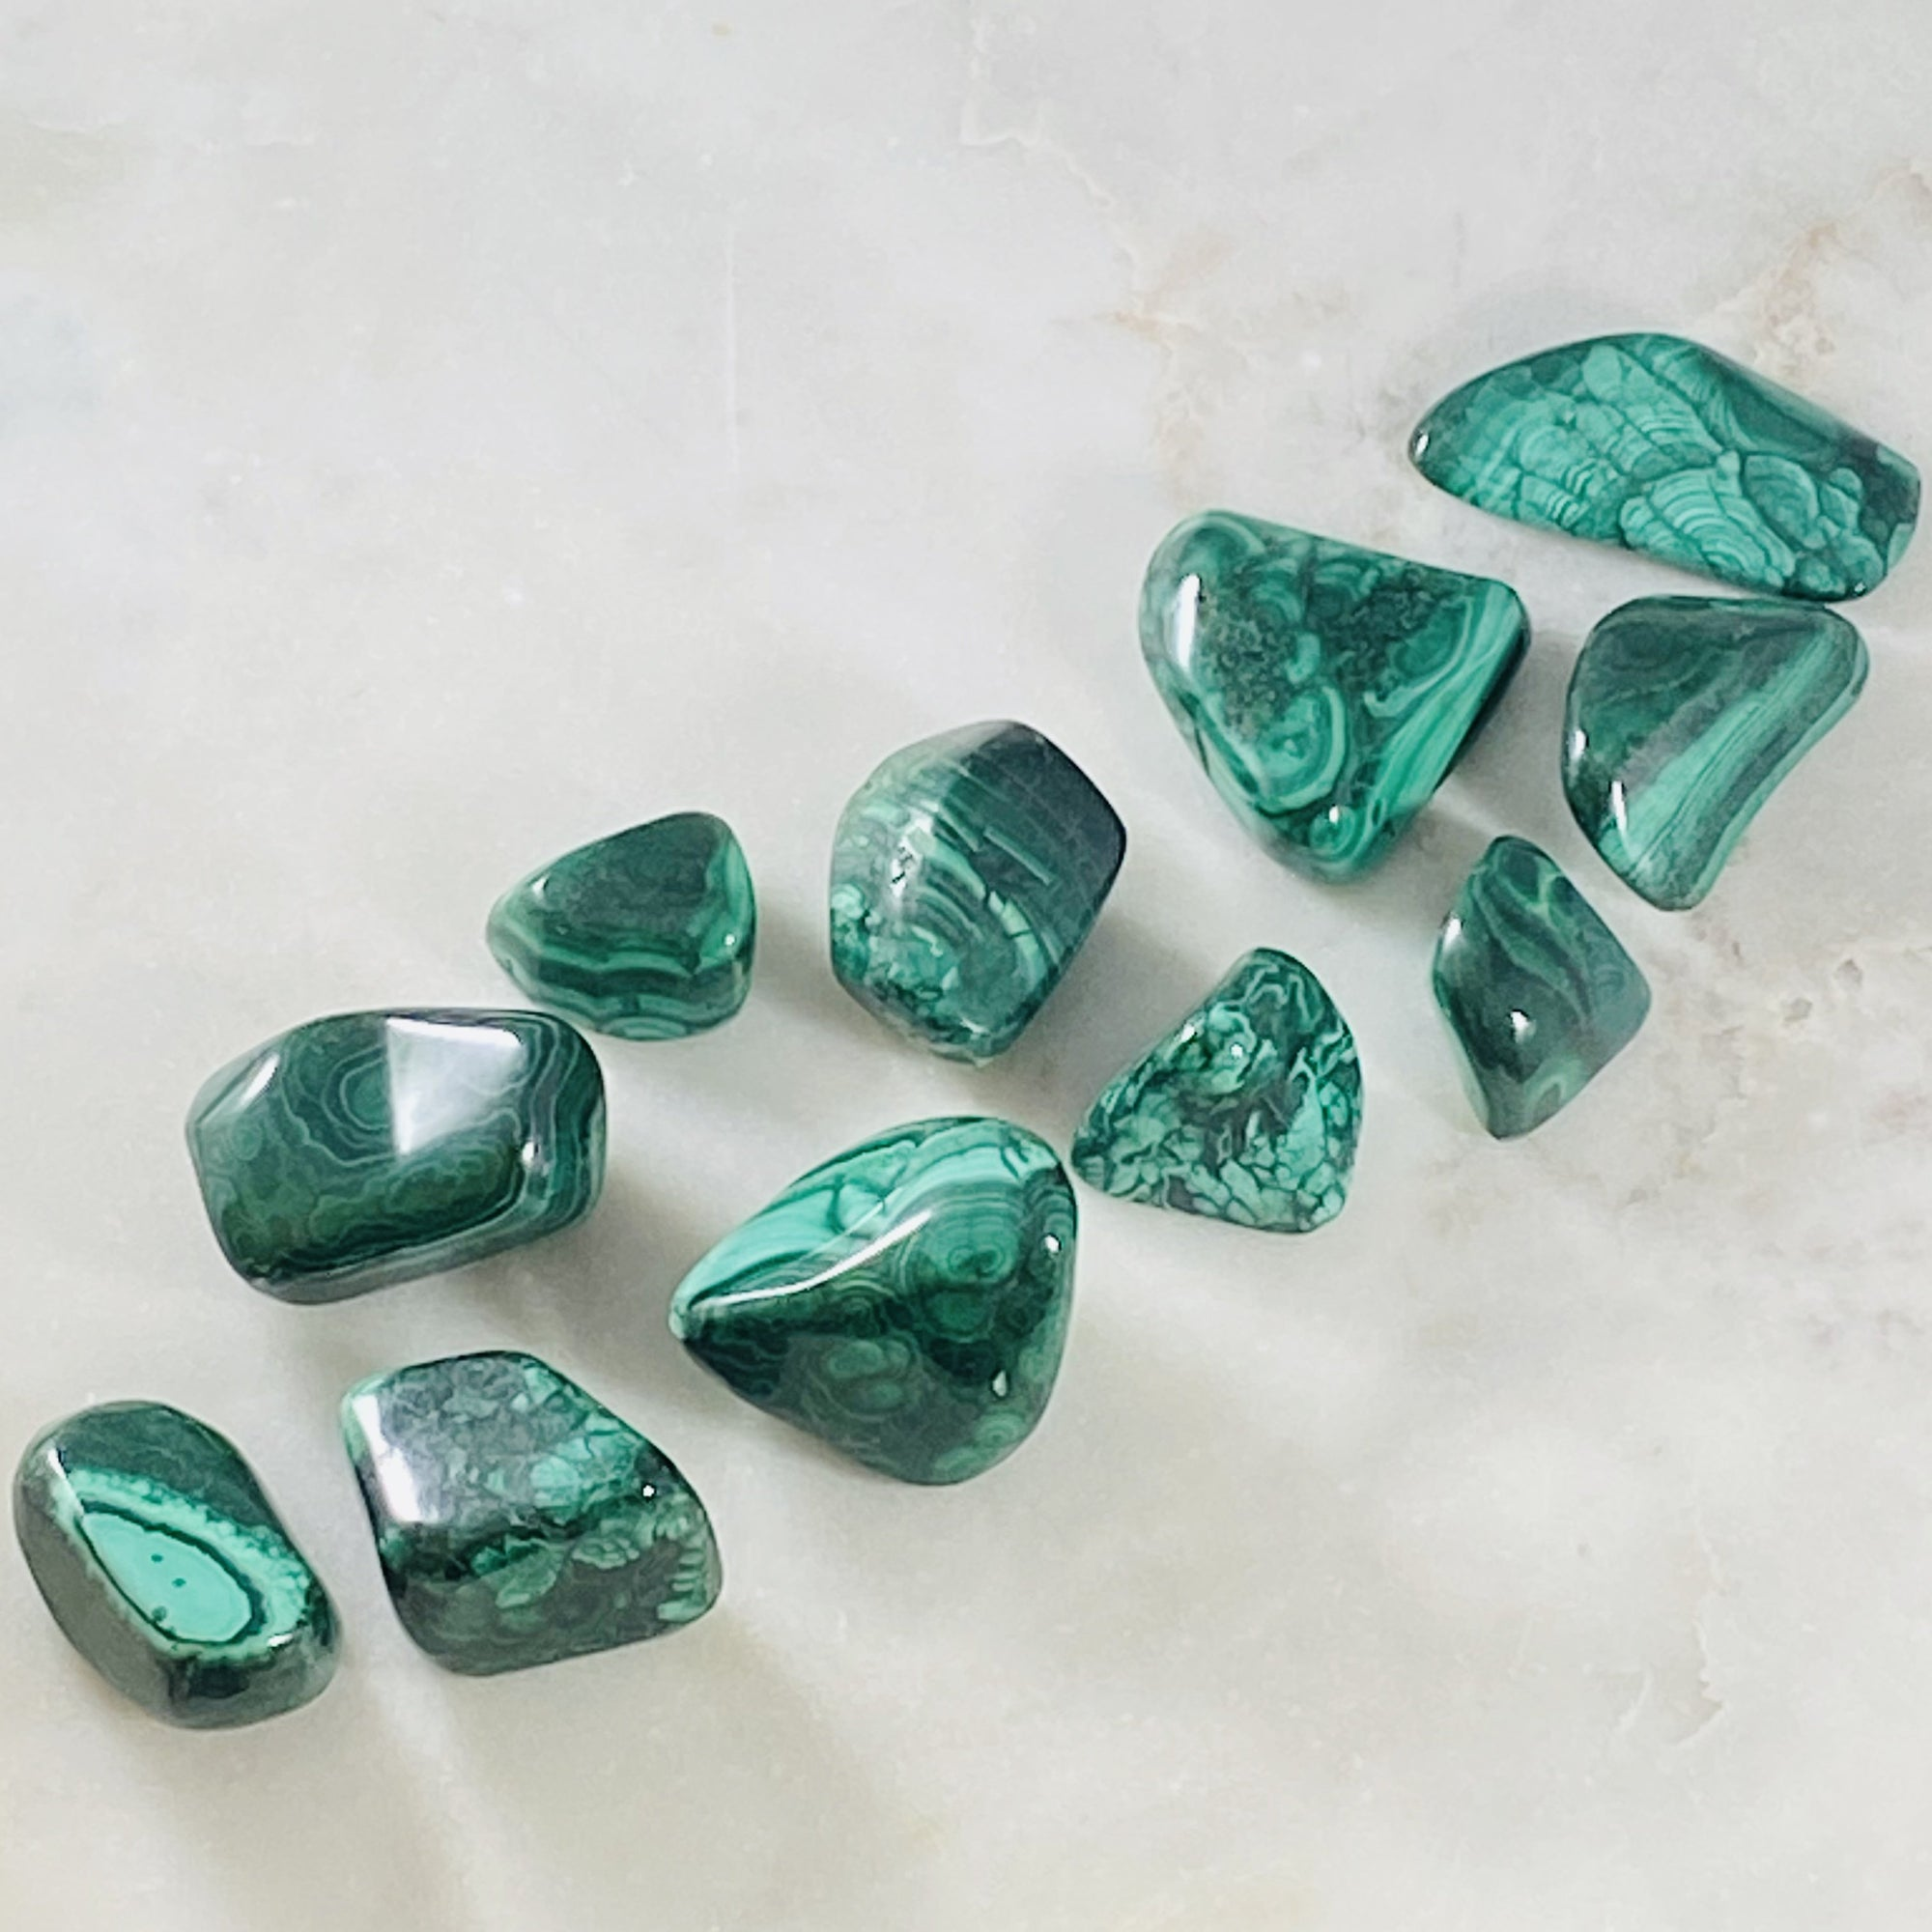 Tumbled malachite healing gemstones